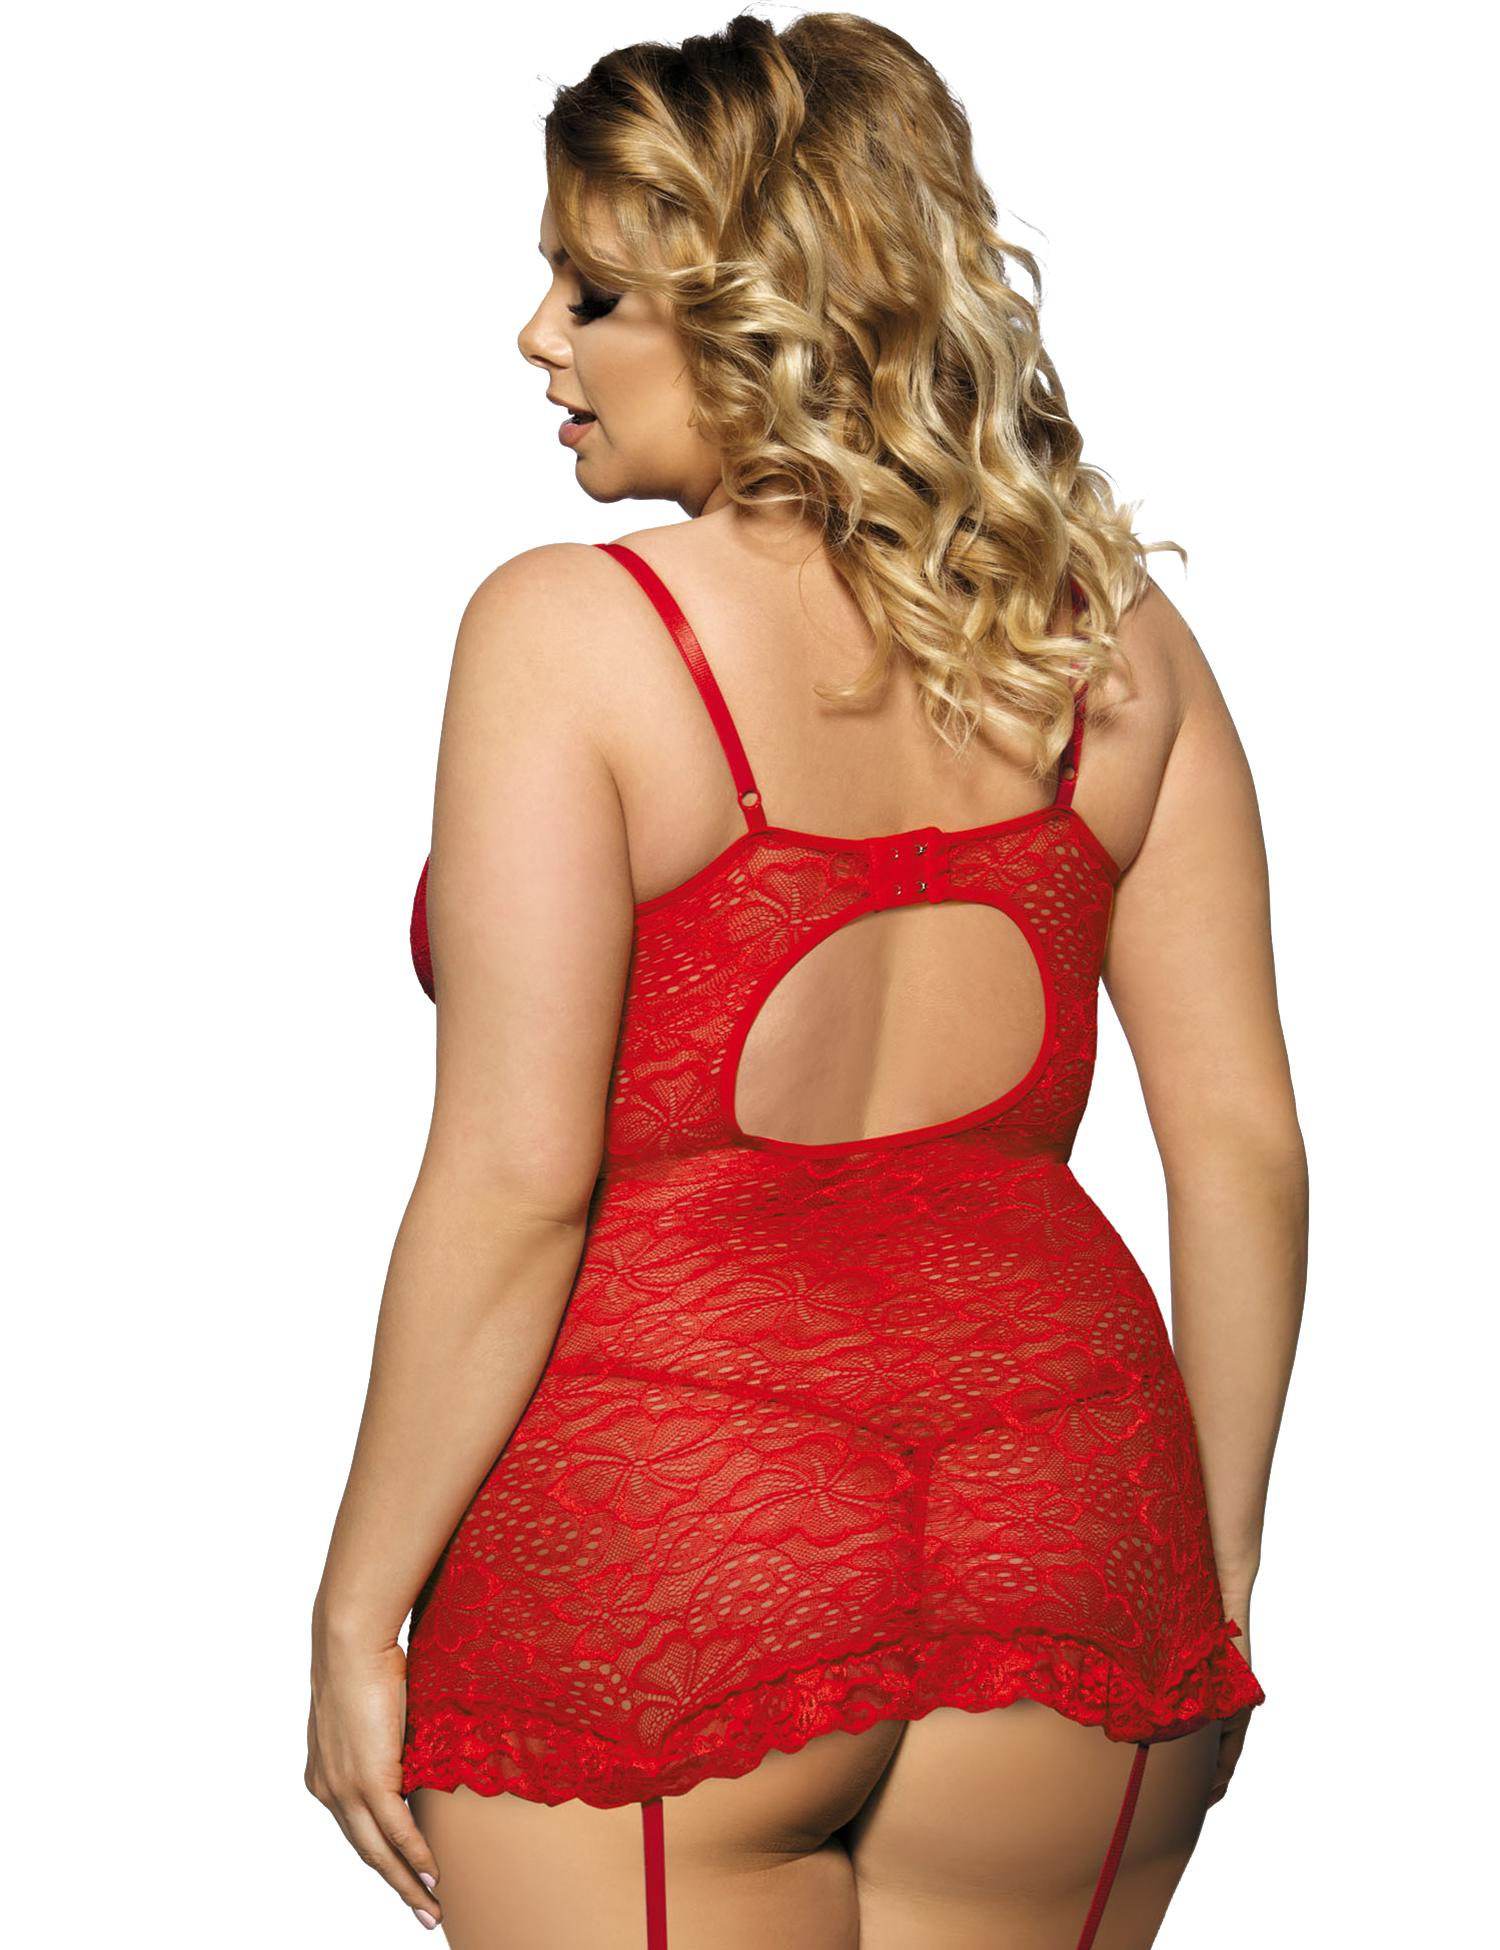 Red Floral Lace Babydoll Set rear view